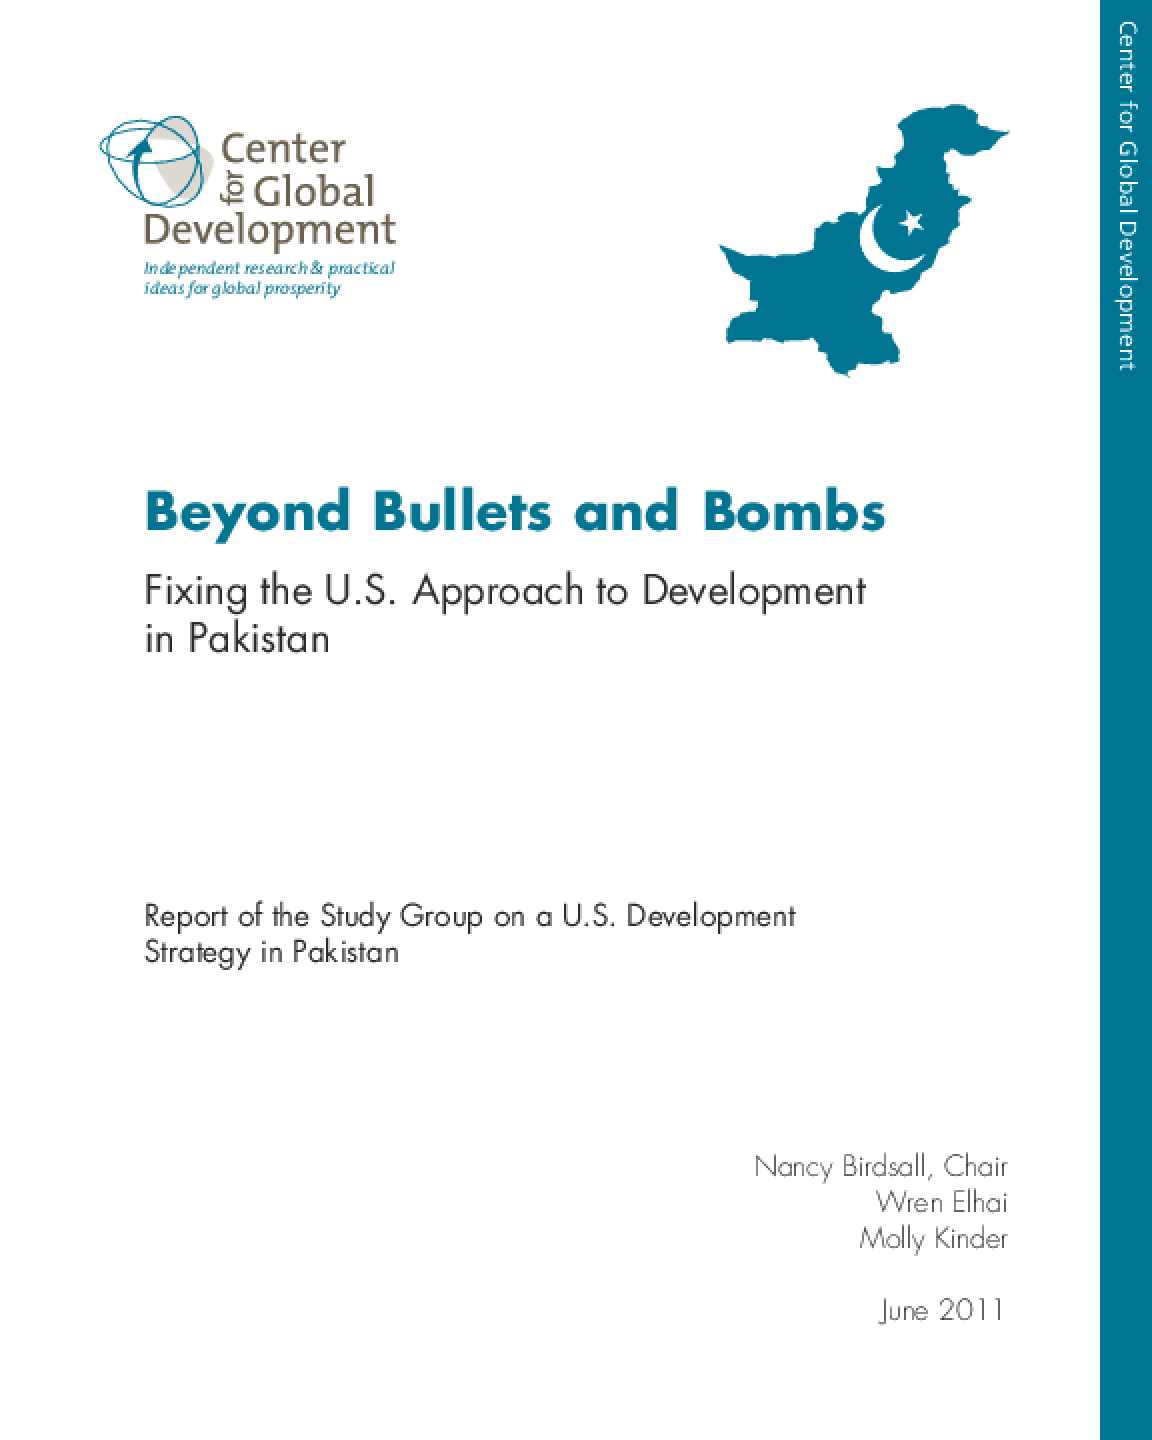 Beyond Bullets and Bombs: Fixing the U.S. Approach to Development in Pakistan